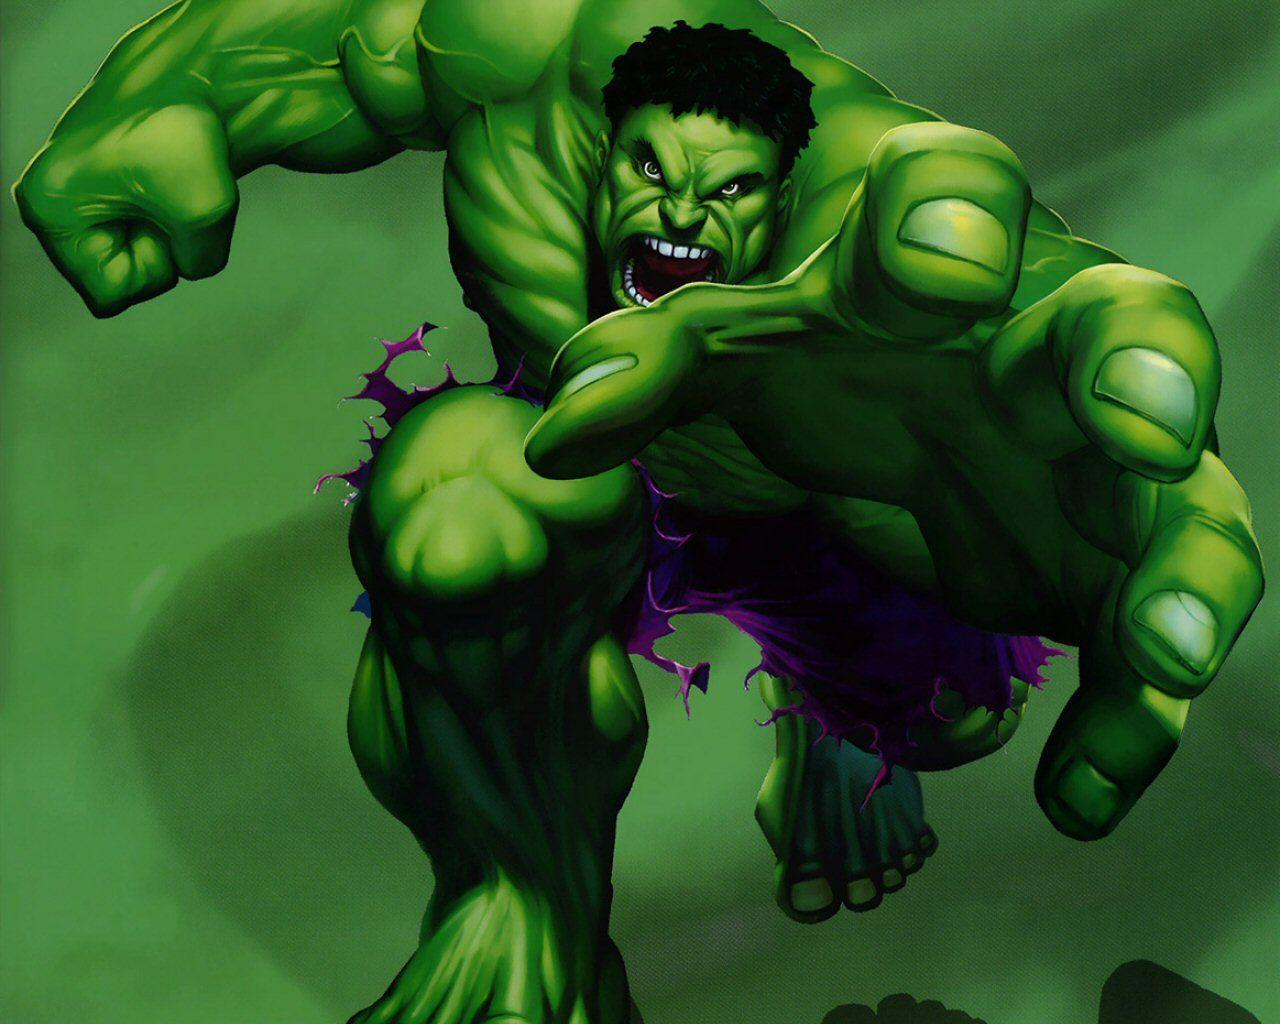 Desktop Wallpapers Free: Hulk Wallpapers